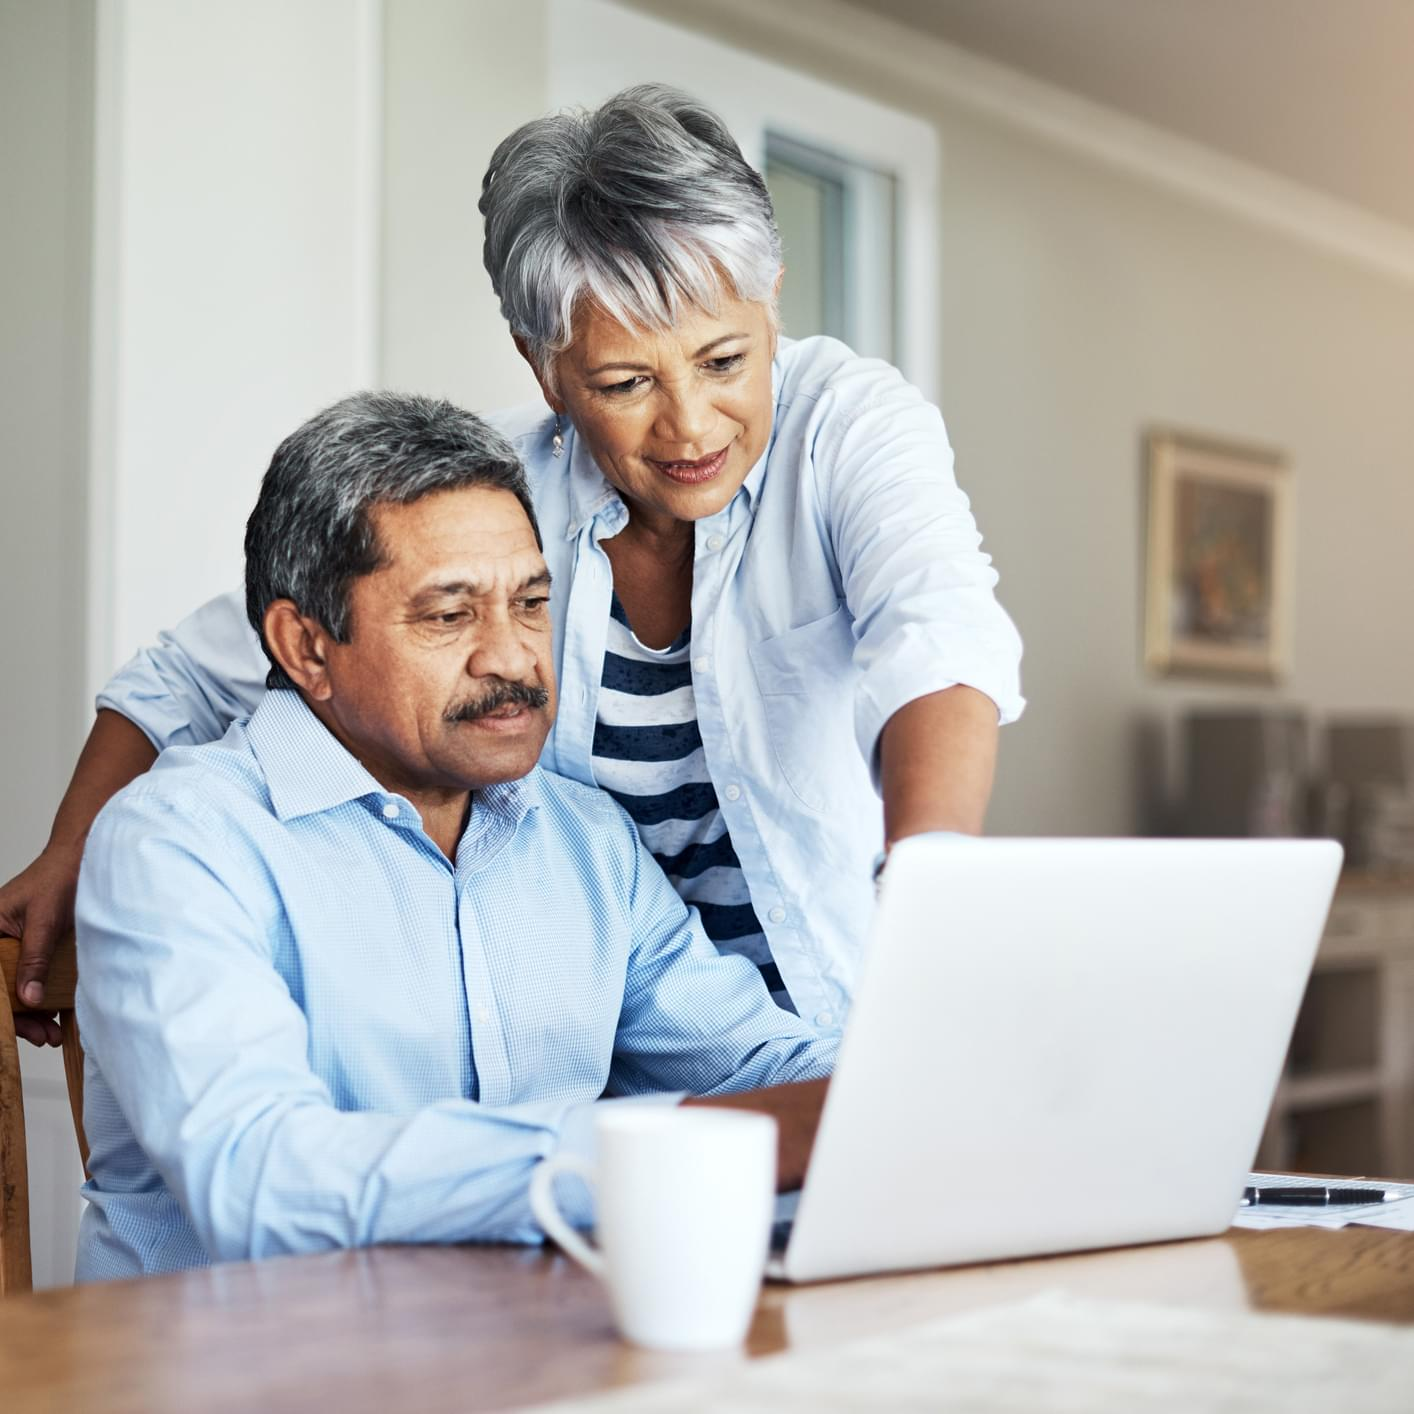 Older couple looking at laptop together